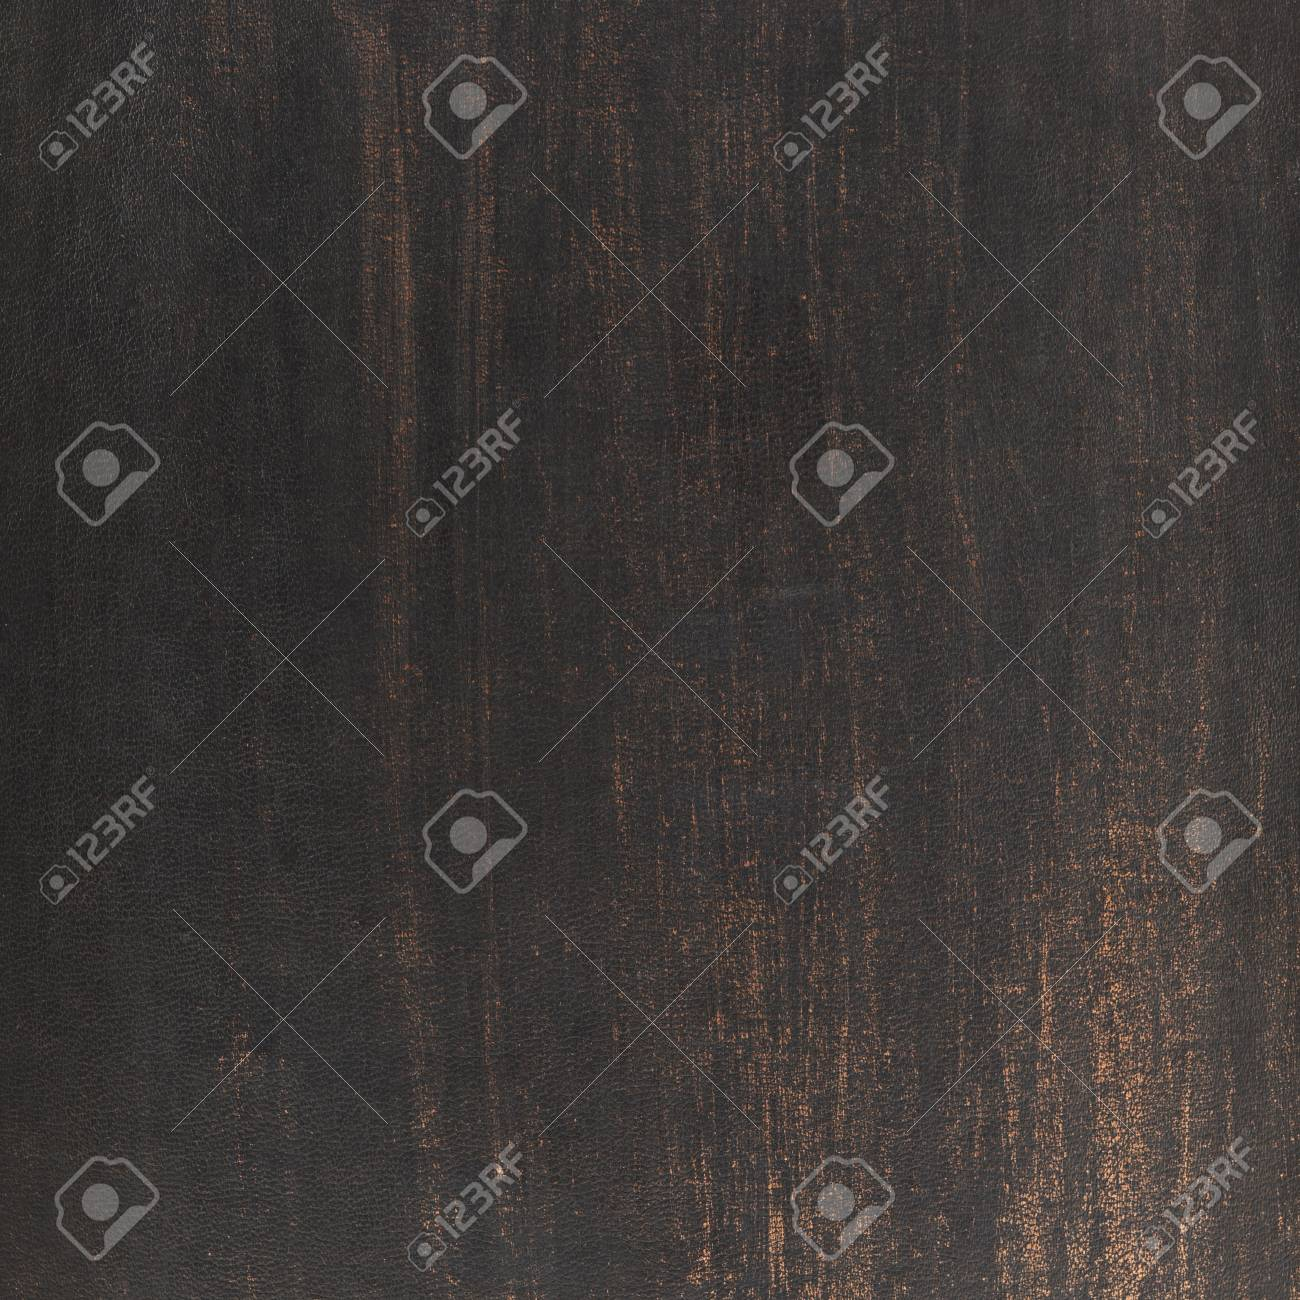 Scratched dark old leather texture as a background Stock Photo - 21053744